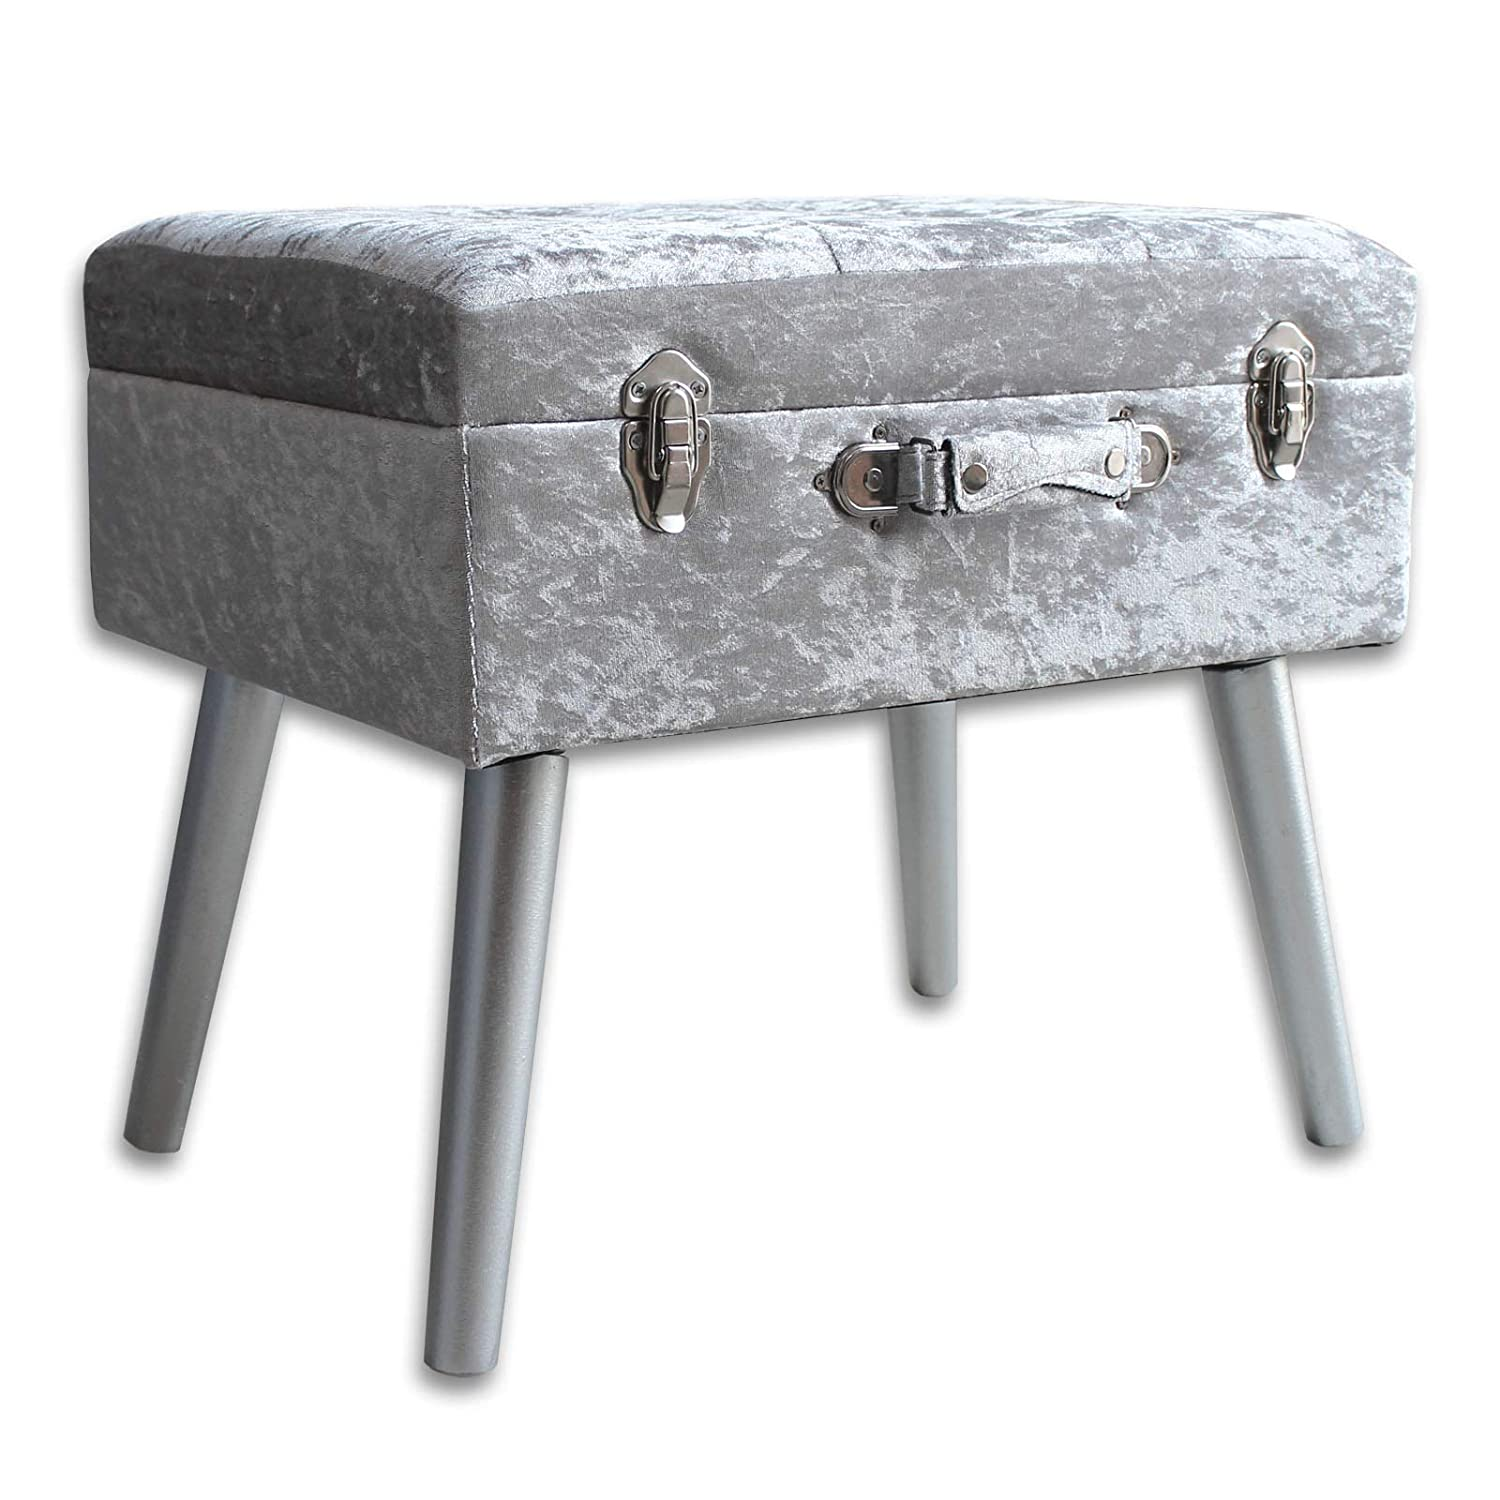 Diamante buttons suitcase style ottoman footstool in silver crushed velvet. Practical storage solution perfect for bedroom and living rooms. Use as footrest bedside table, vanity unit. UK Home Accessories